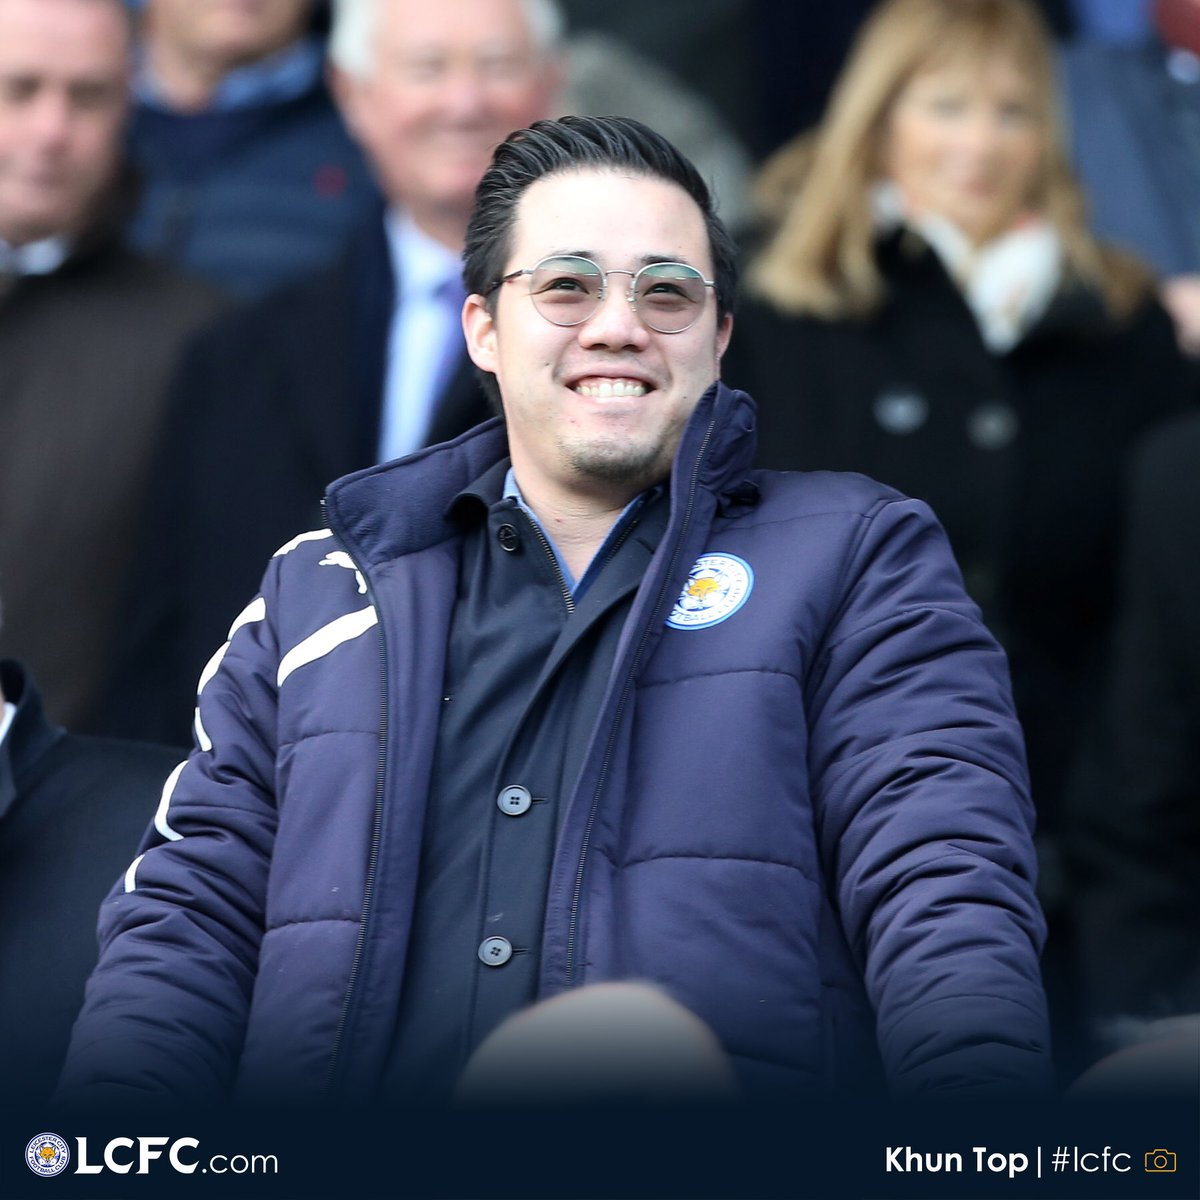 """Leicester City on Twitter: """"Happy birthday to our Vice-Chairman Khun Top!  #lcfc… """""""